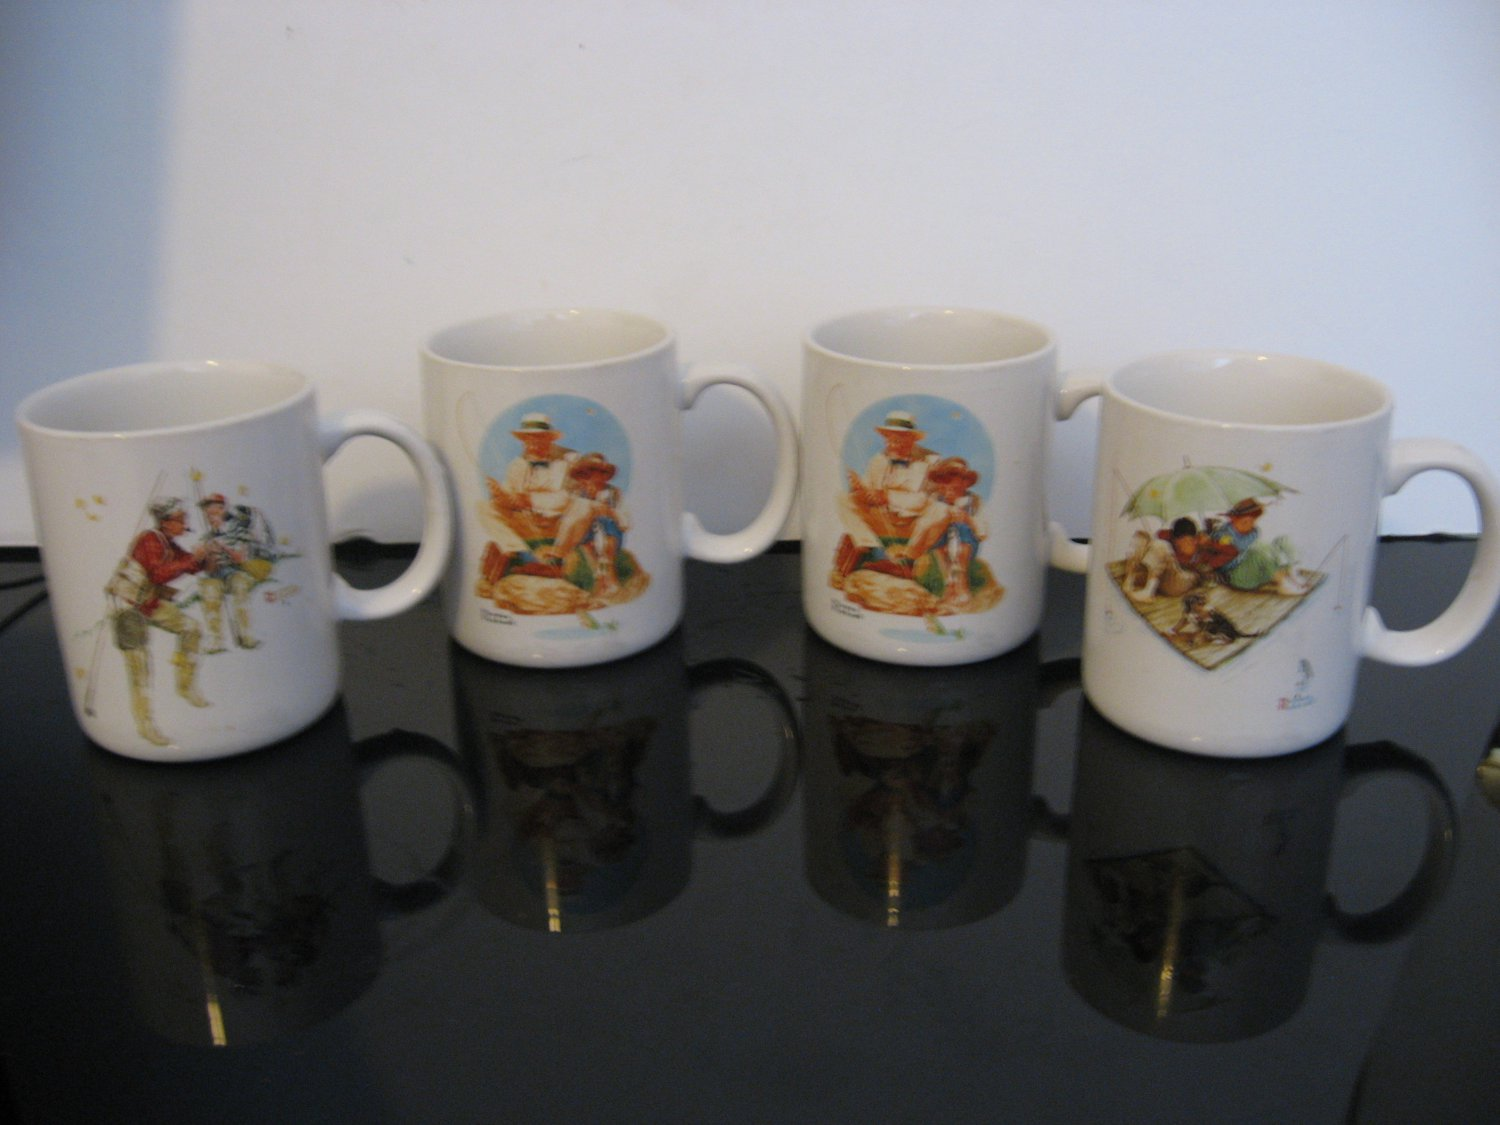 Vintage 1987 Norman Rockwell Museum Collection Set of 4 Mugs